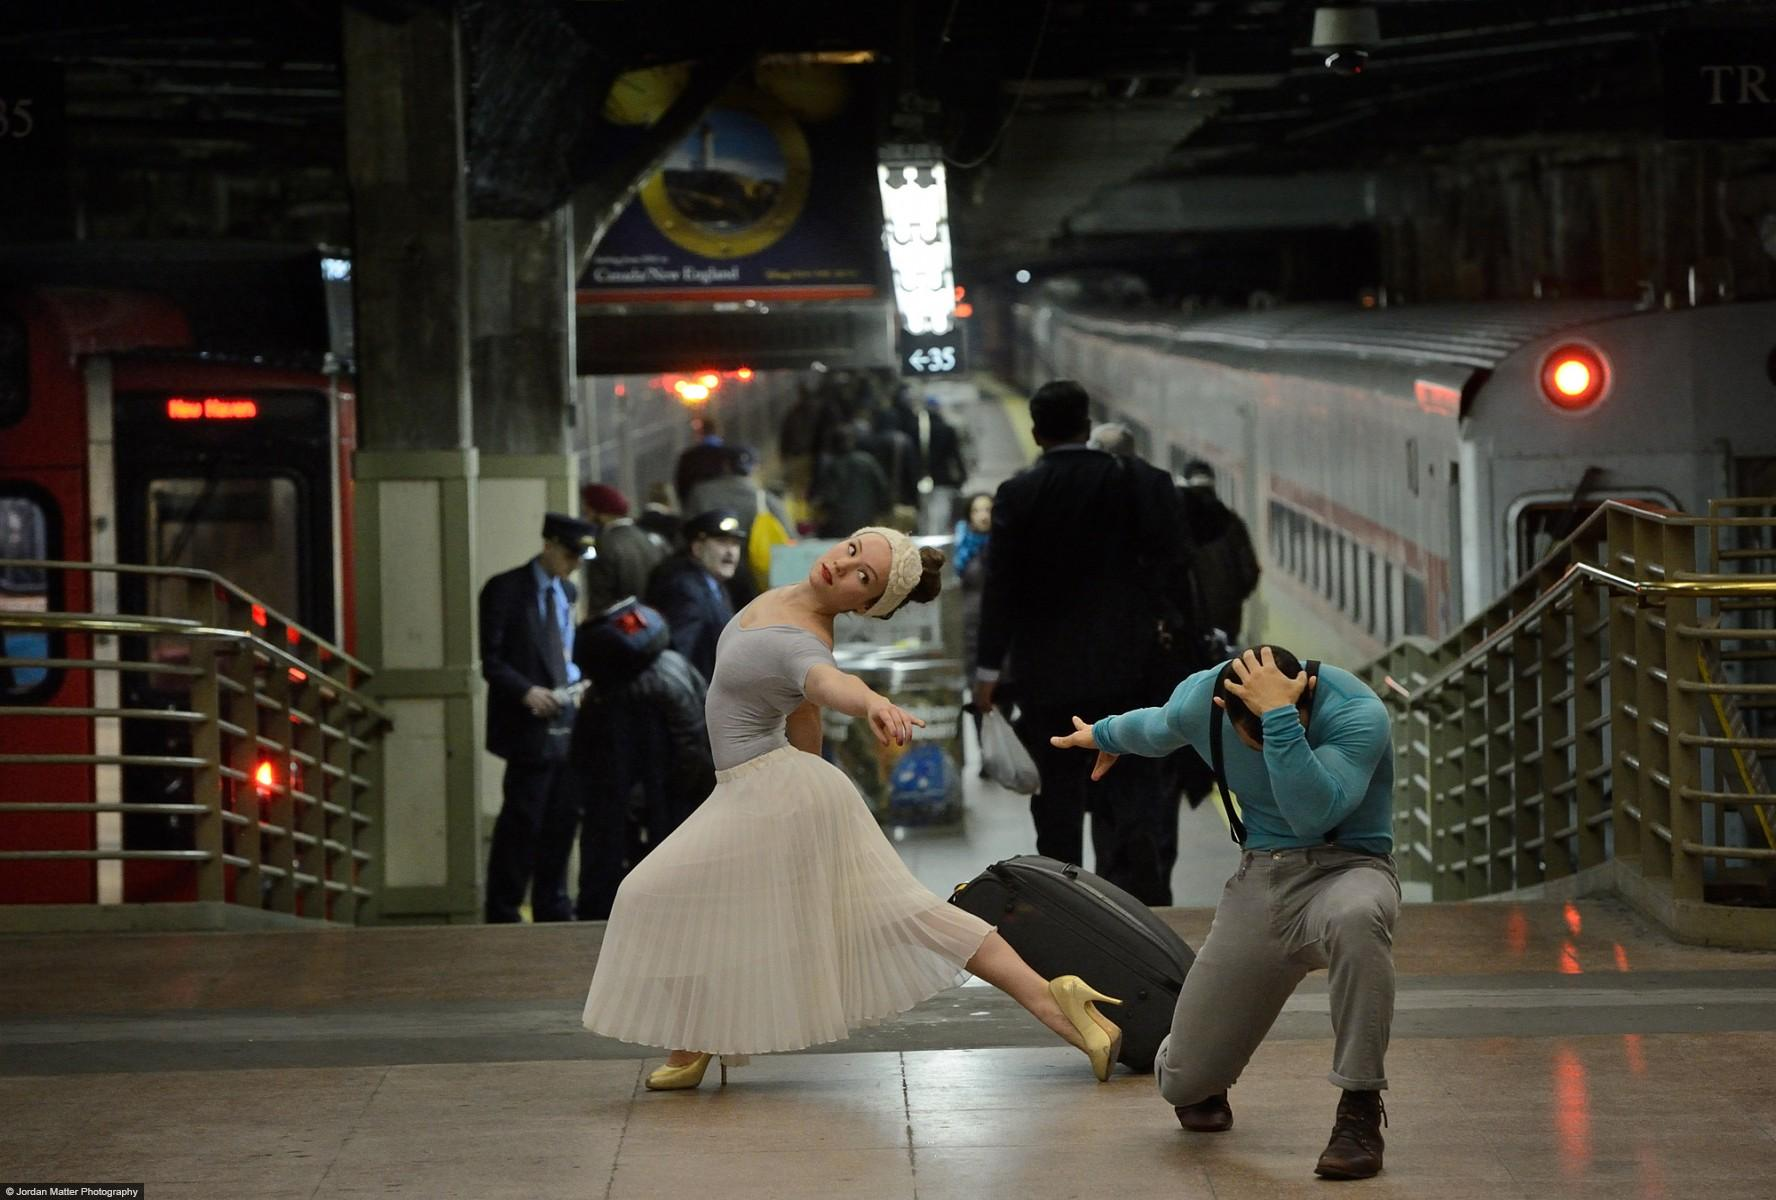 Dancers Among Us Grand Central Station Orlando Martinez SarahSadie Newett-